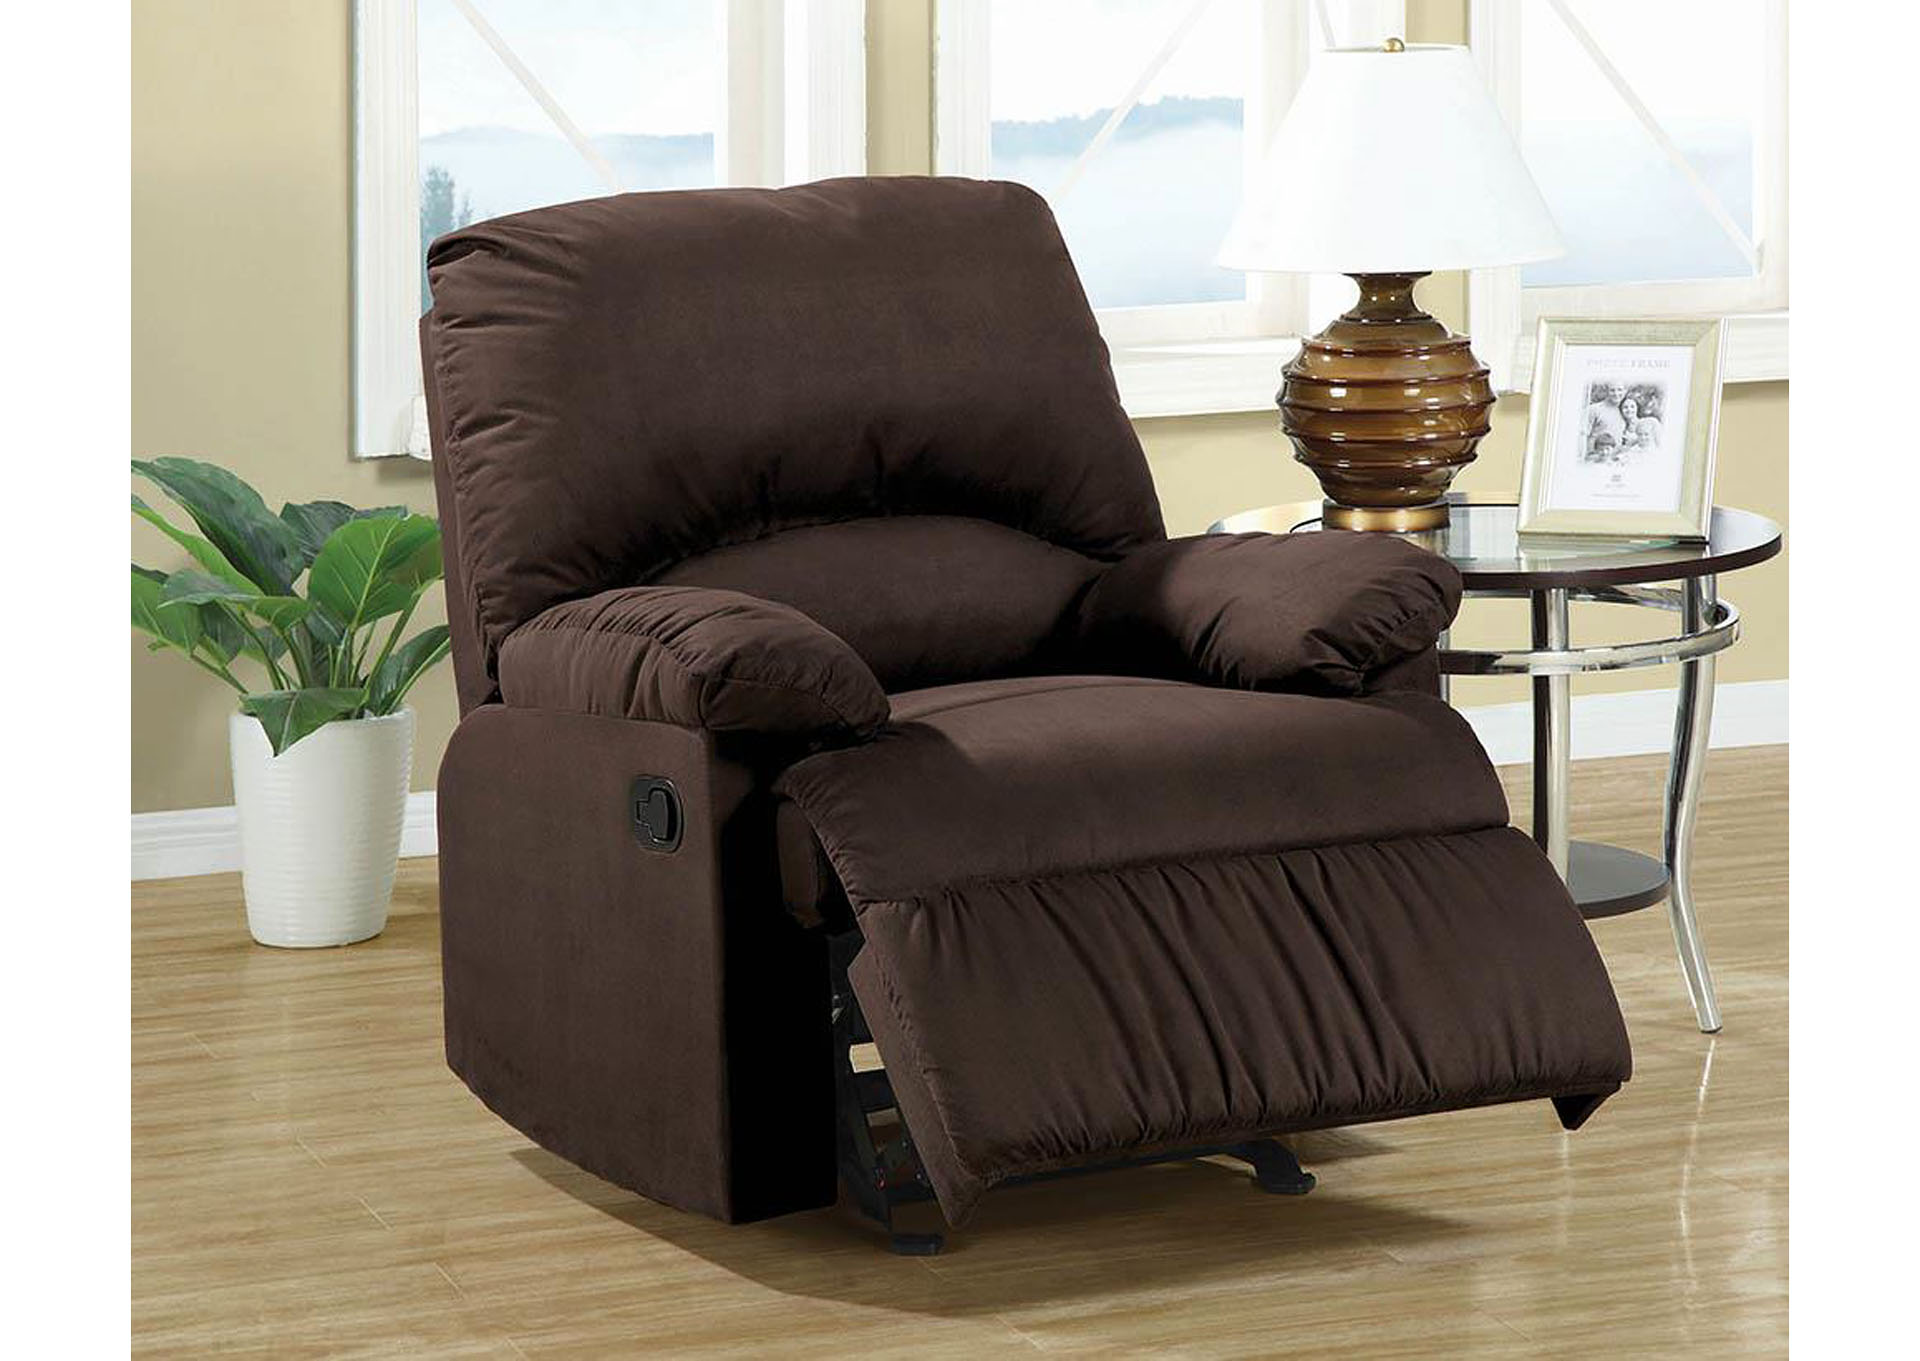 Chocolate Recliner,Coaster Furniture